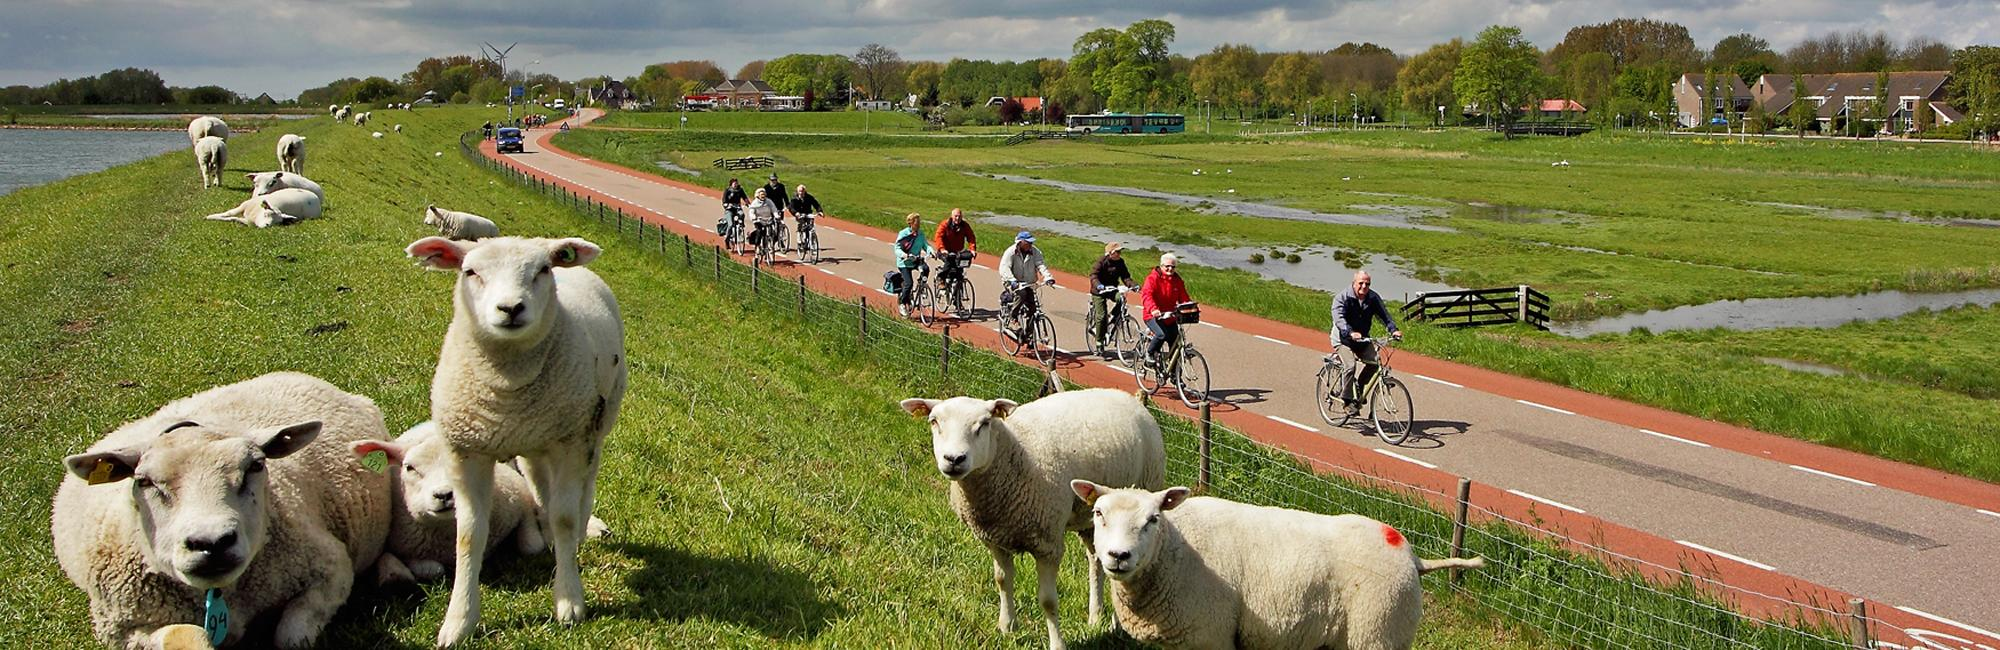 Sheeps and cyclists in Holland